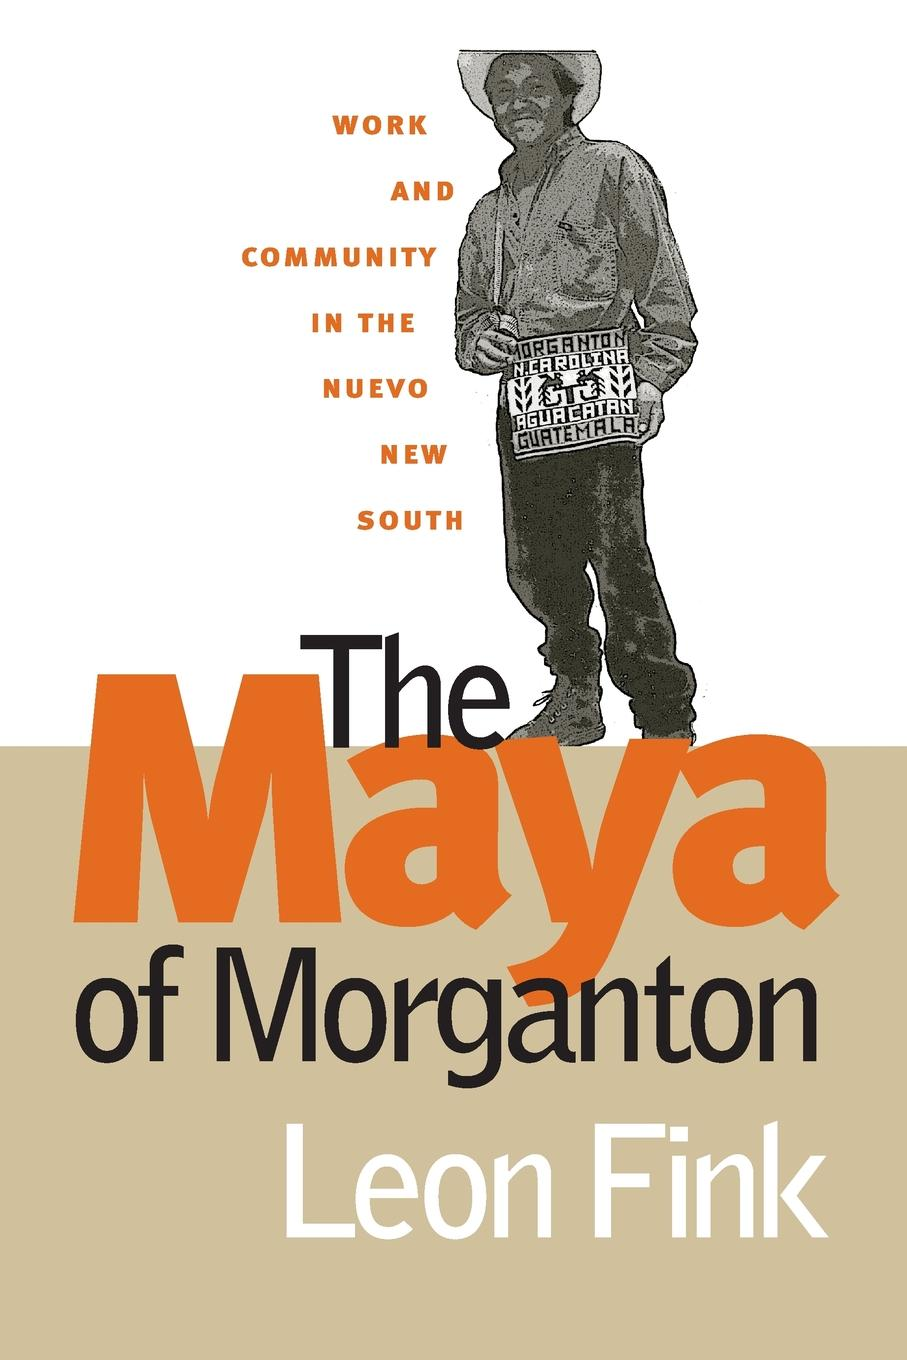 Leon Fink The Maya of Morganton. Work and Community in the Nuevo New South stefanie laufs fighting a movie with lightning the birth of a nation and the black community